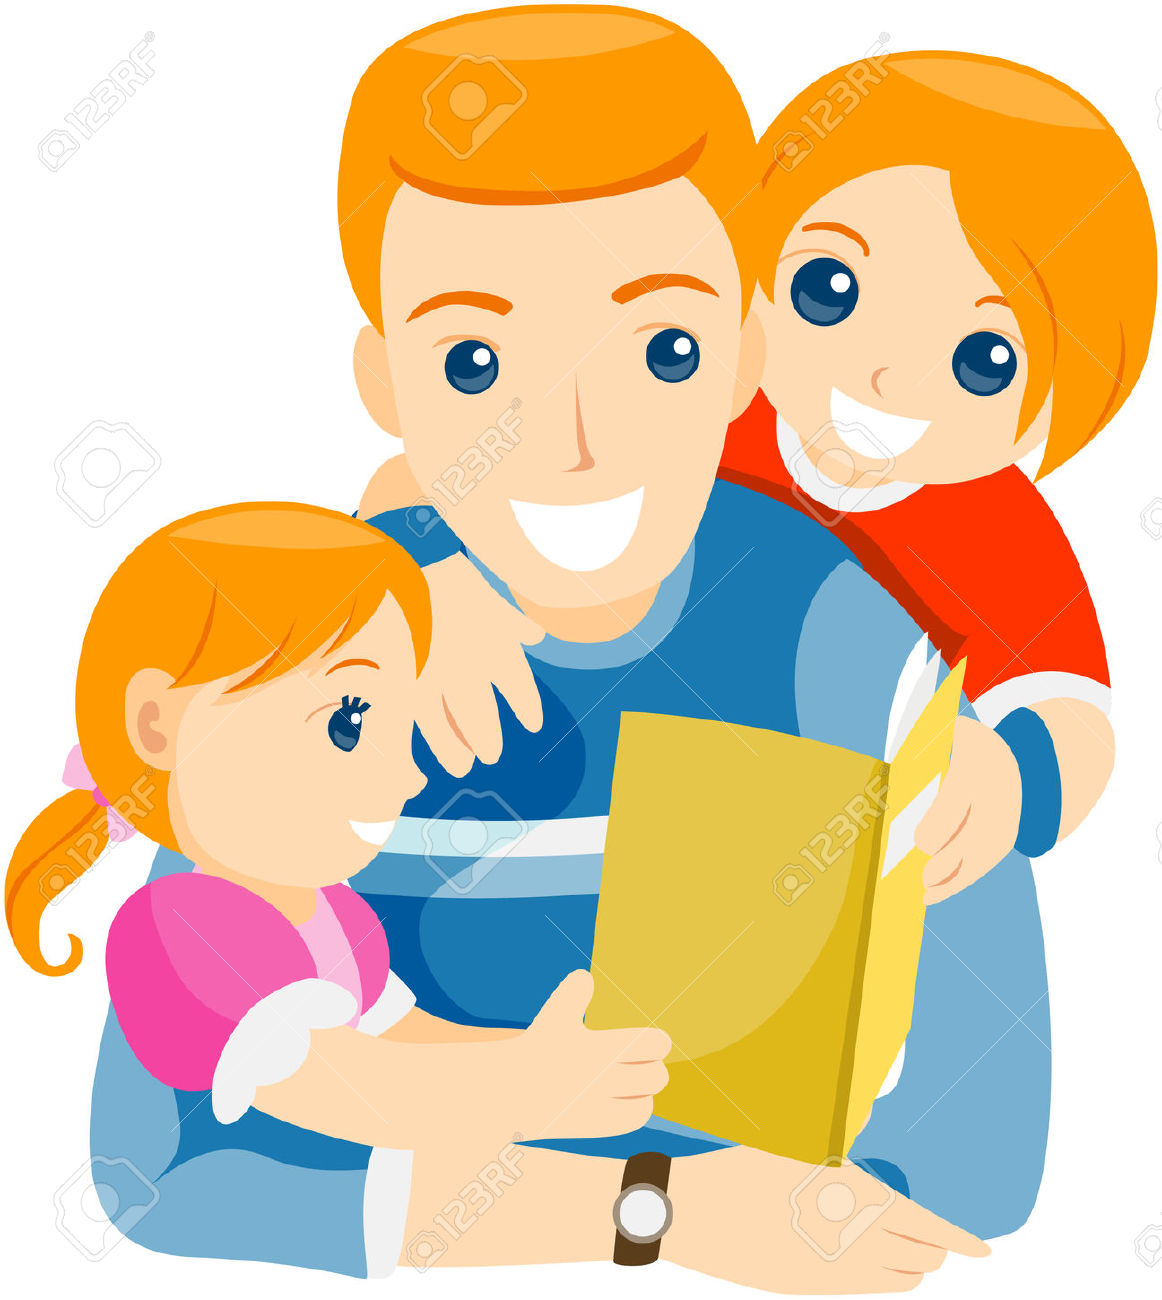 Clipart parent with kids library Parent reading to child clipart - ClipartFox library